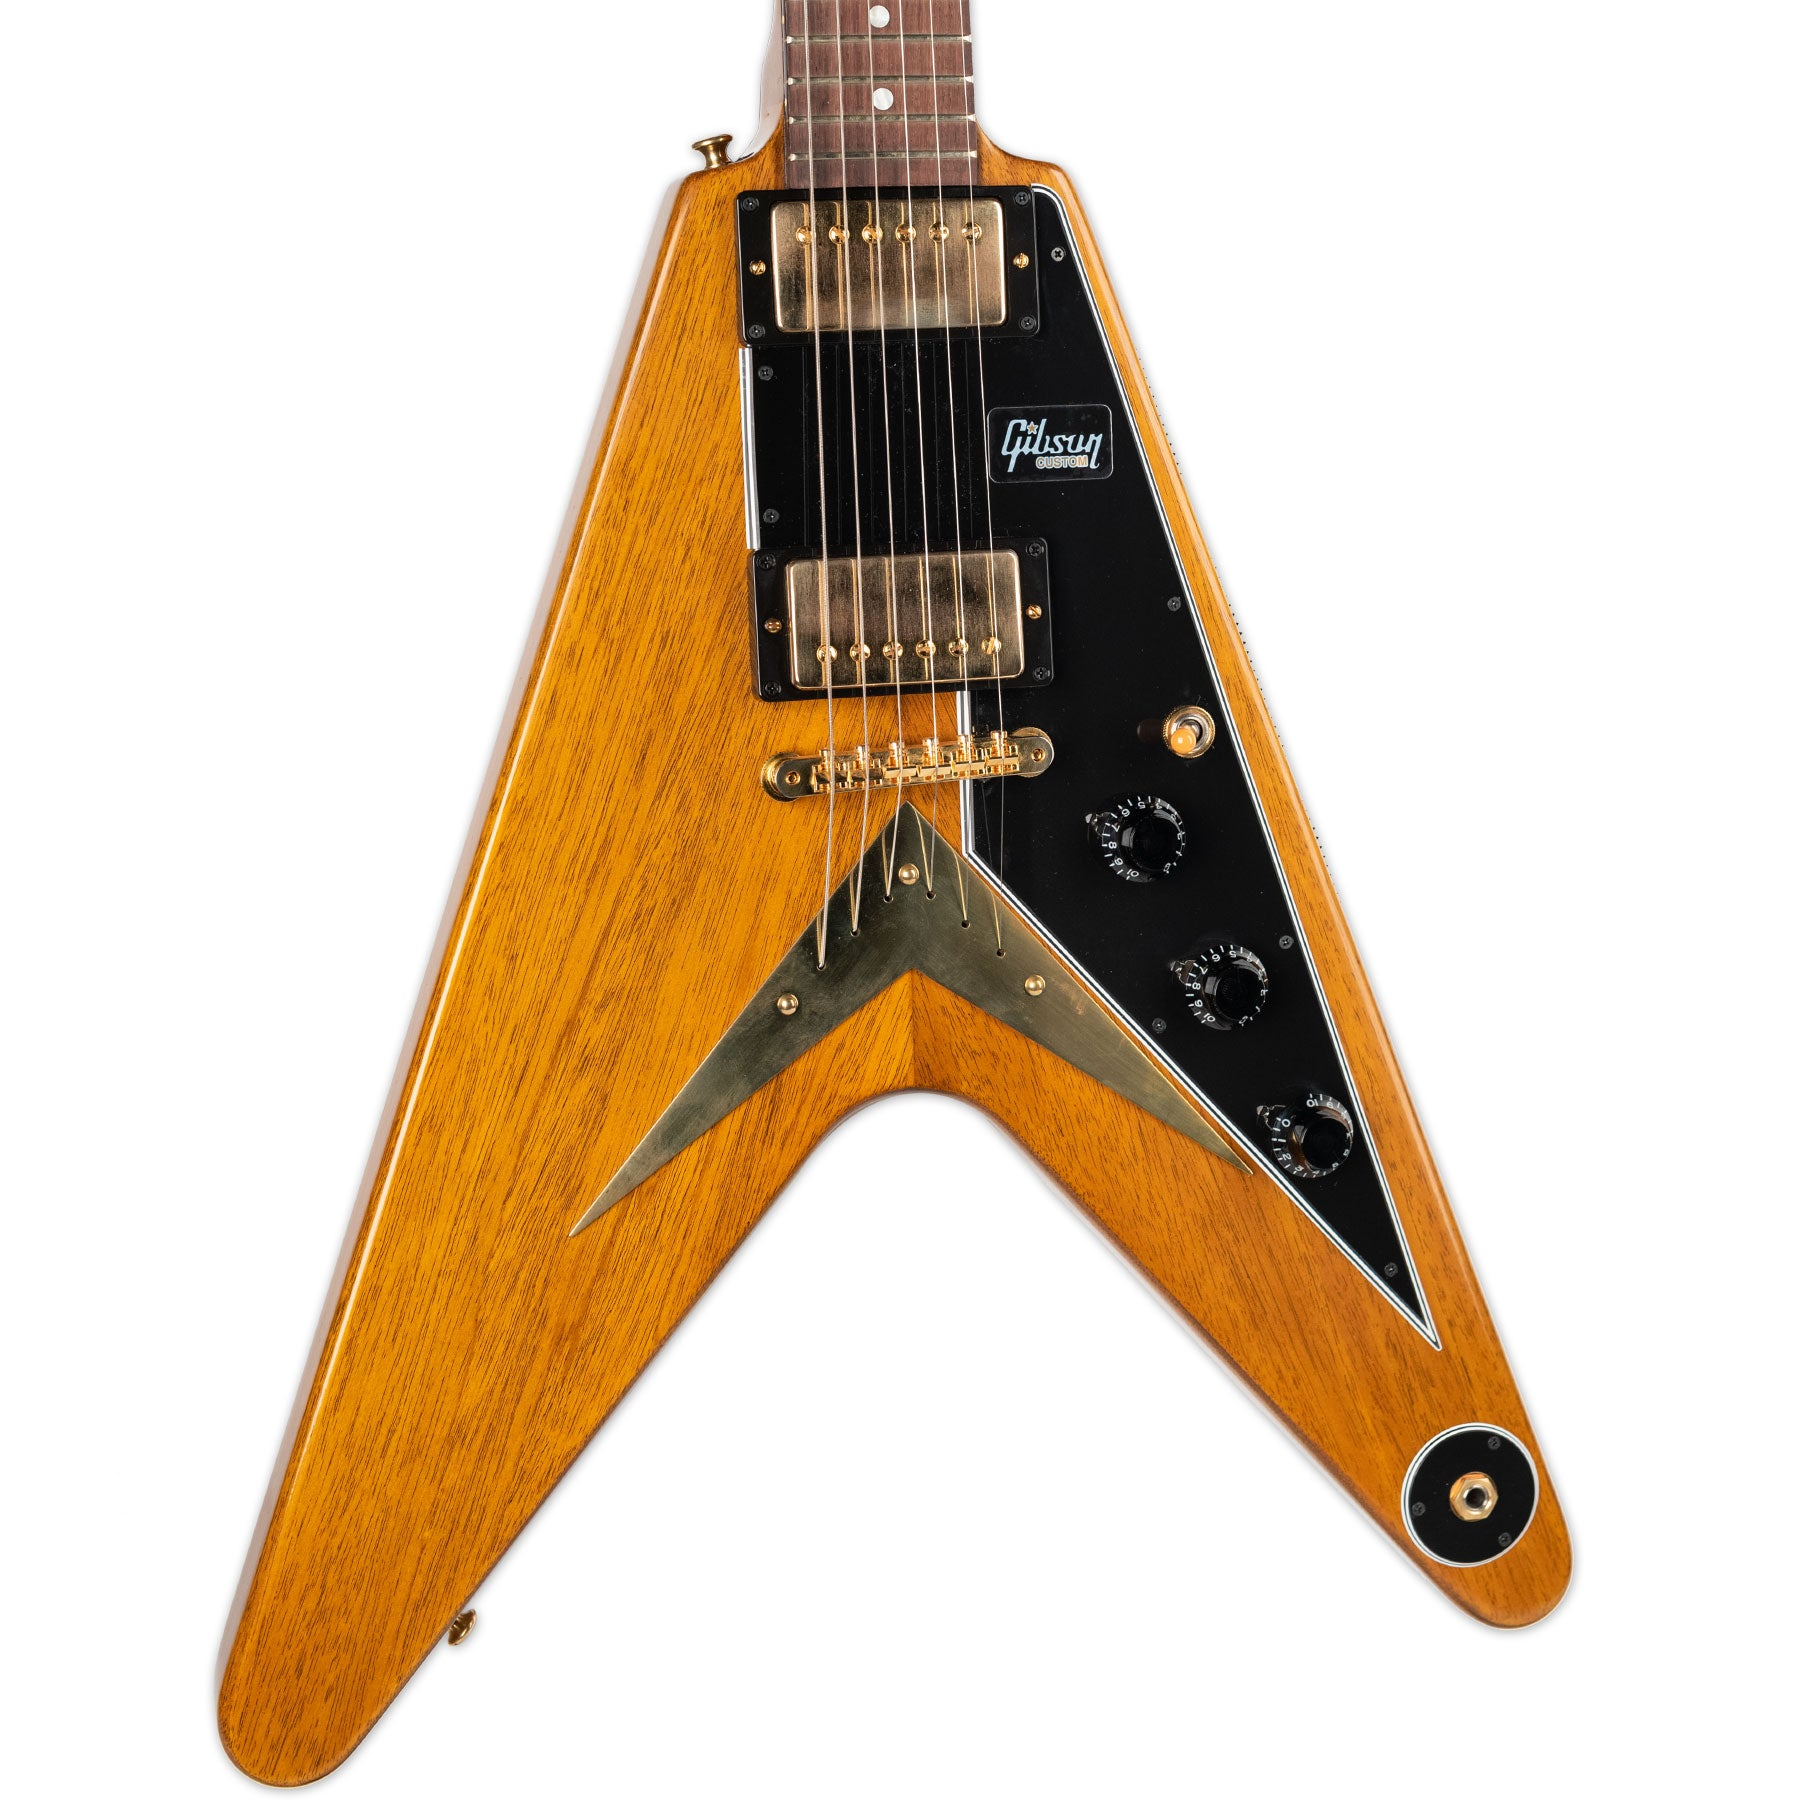 USED GIBSON CUSTOM SHOP FLYING V WITH CASE